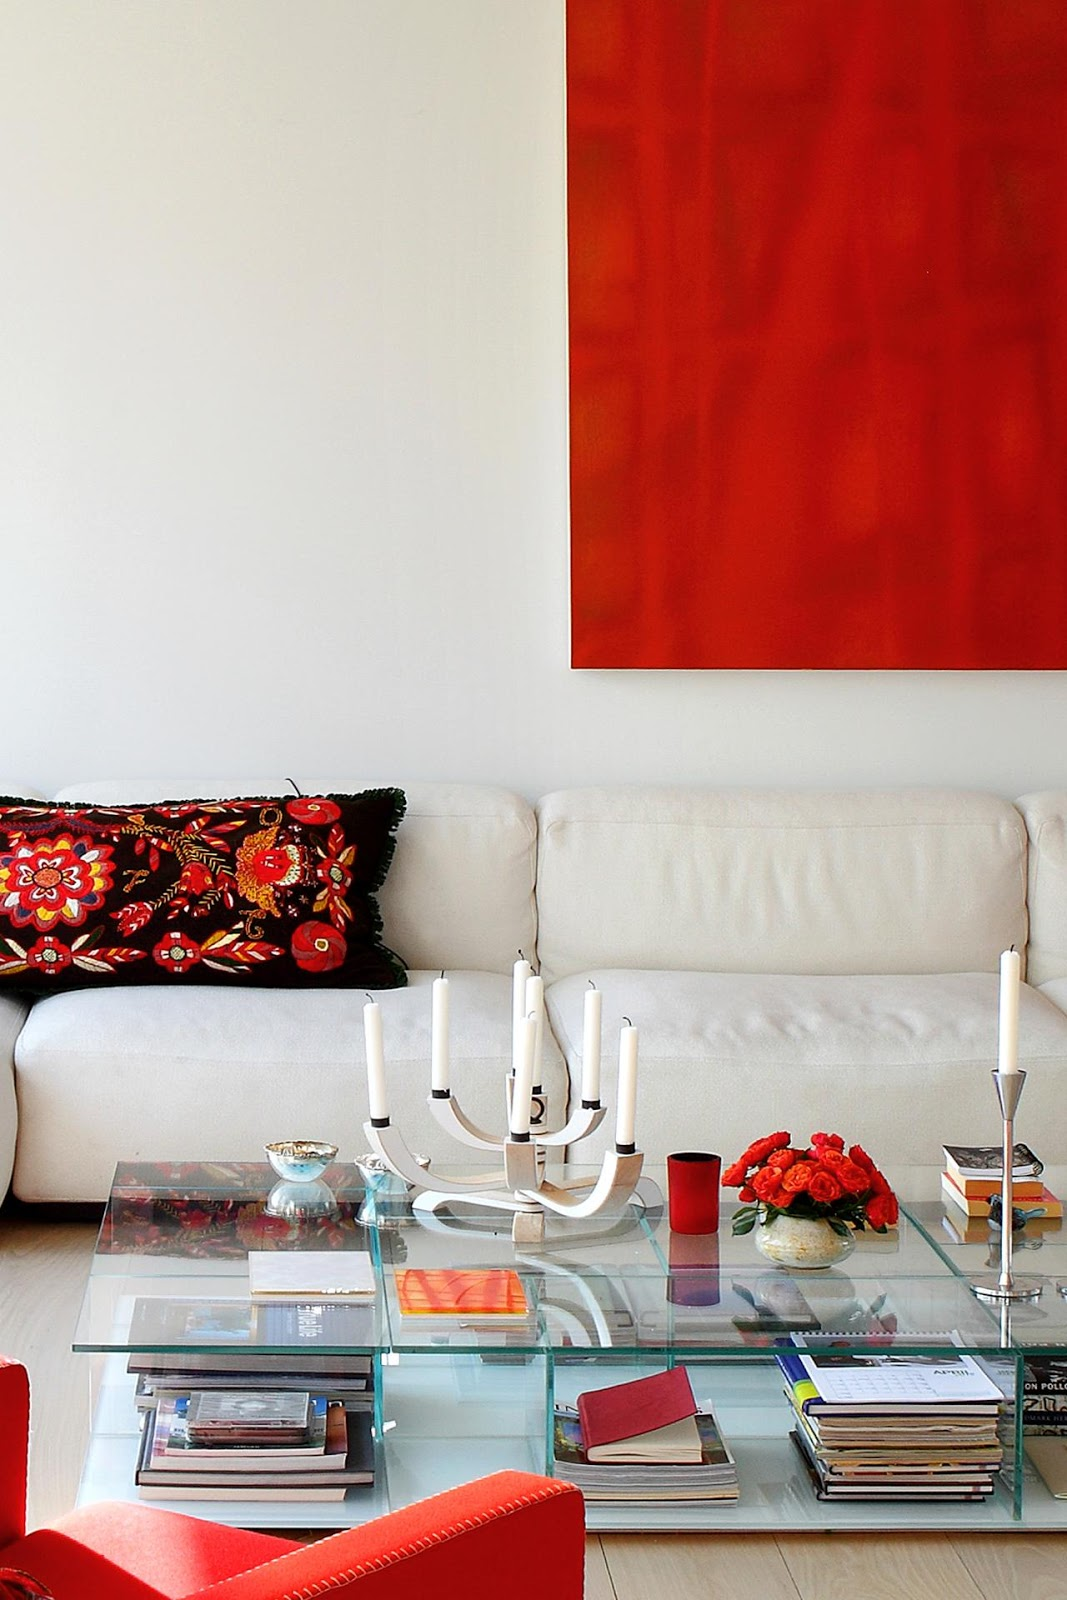 C.B.I.D. HOME DECOR and DESIGN: DECORATE WITH COLOR